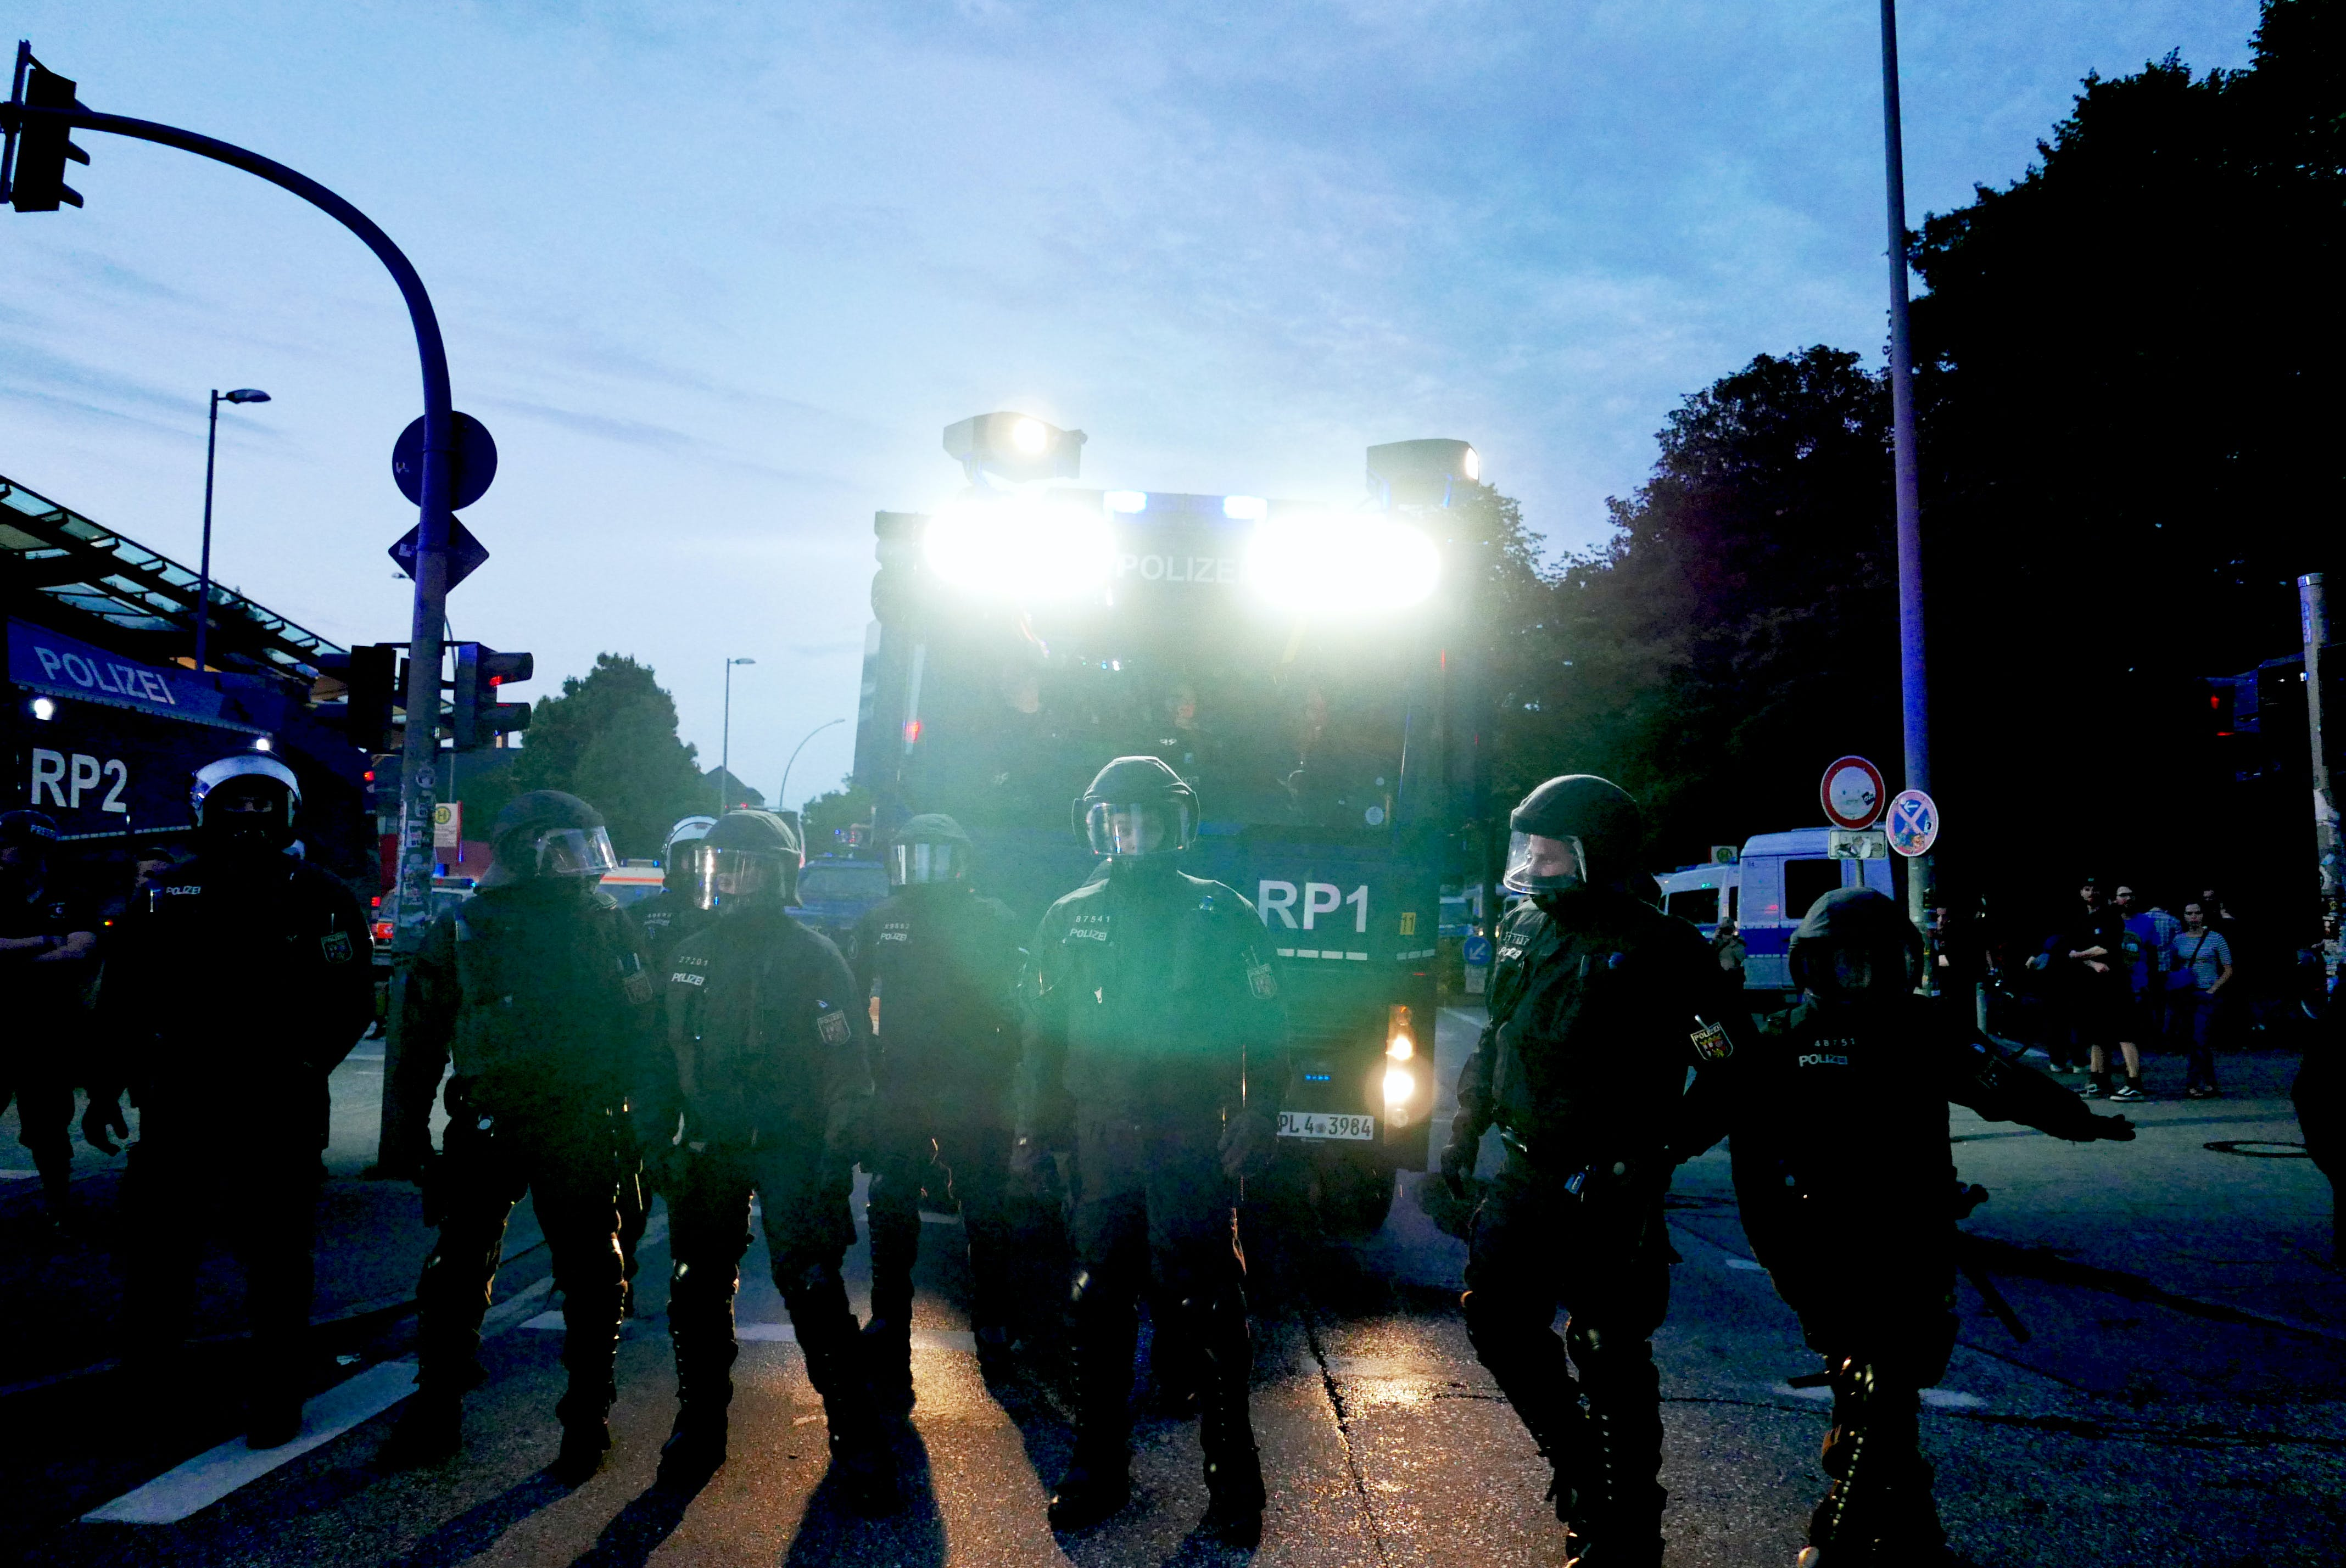 bundespolizei, editorial, g20